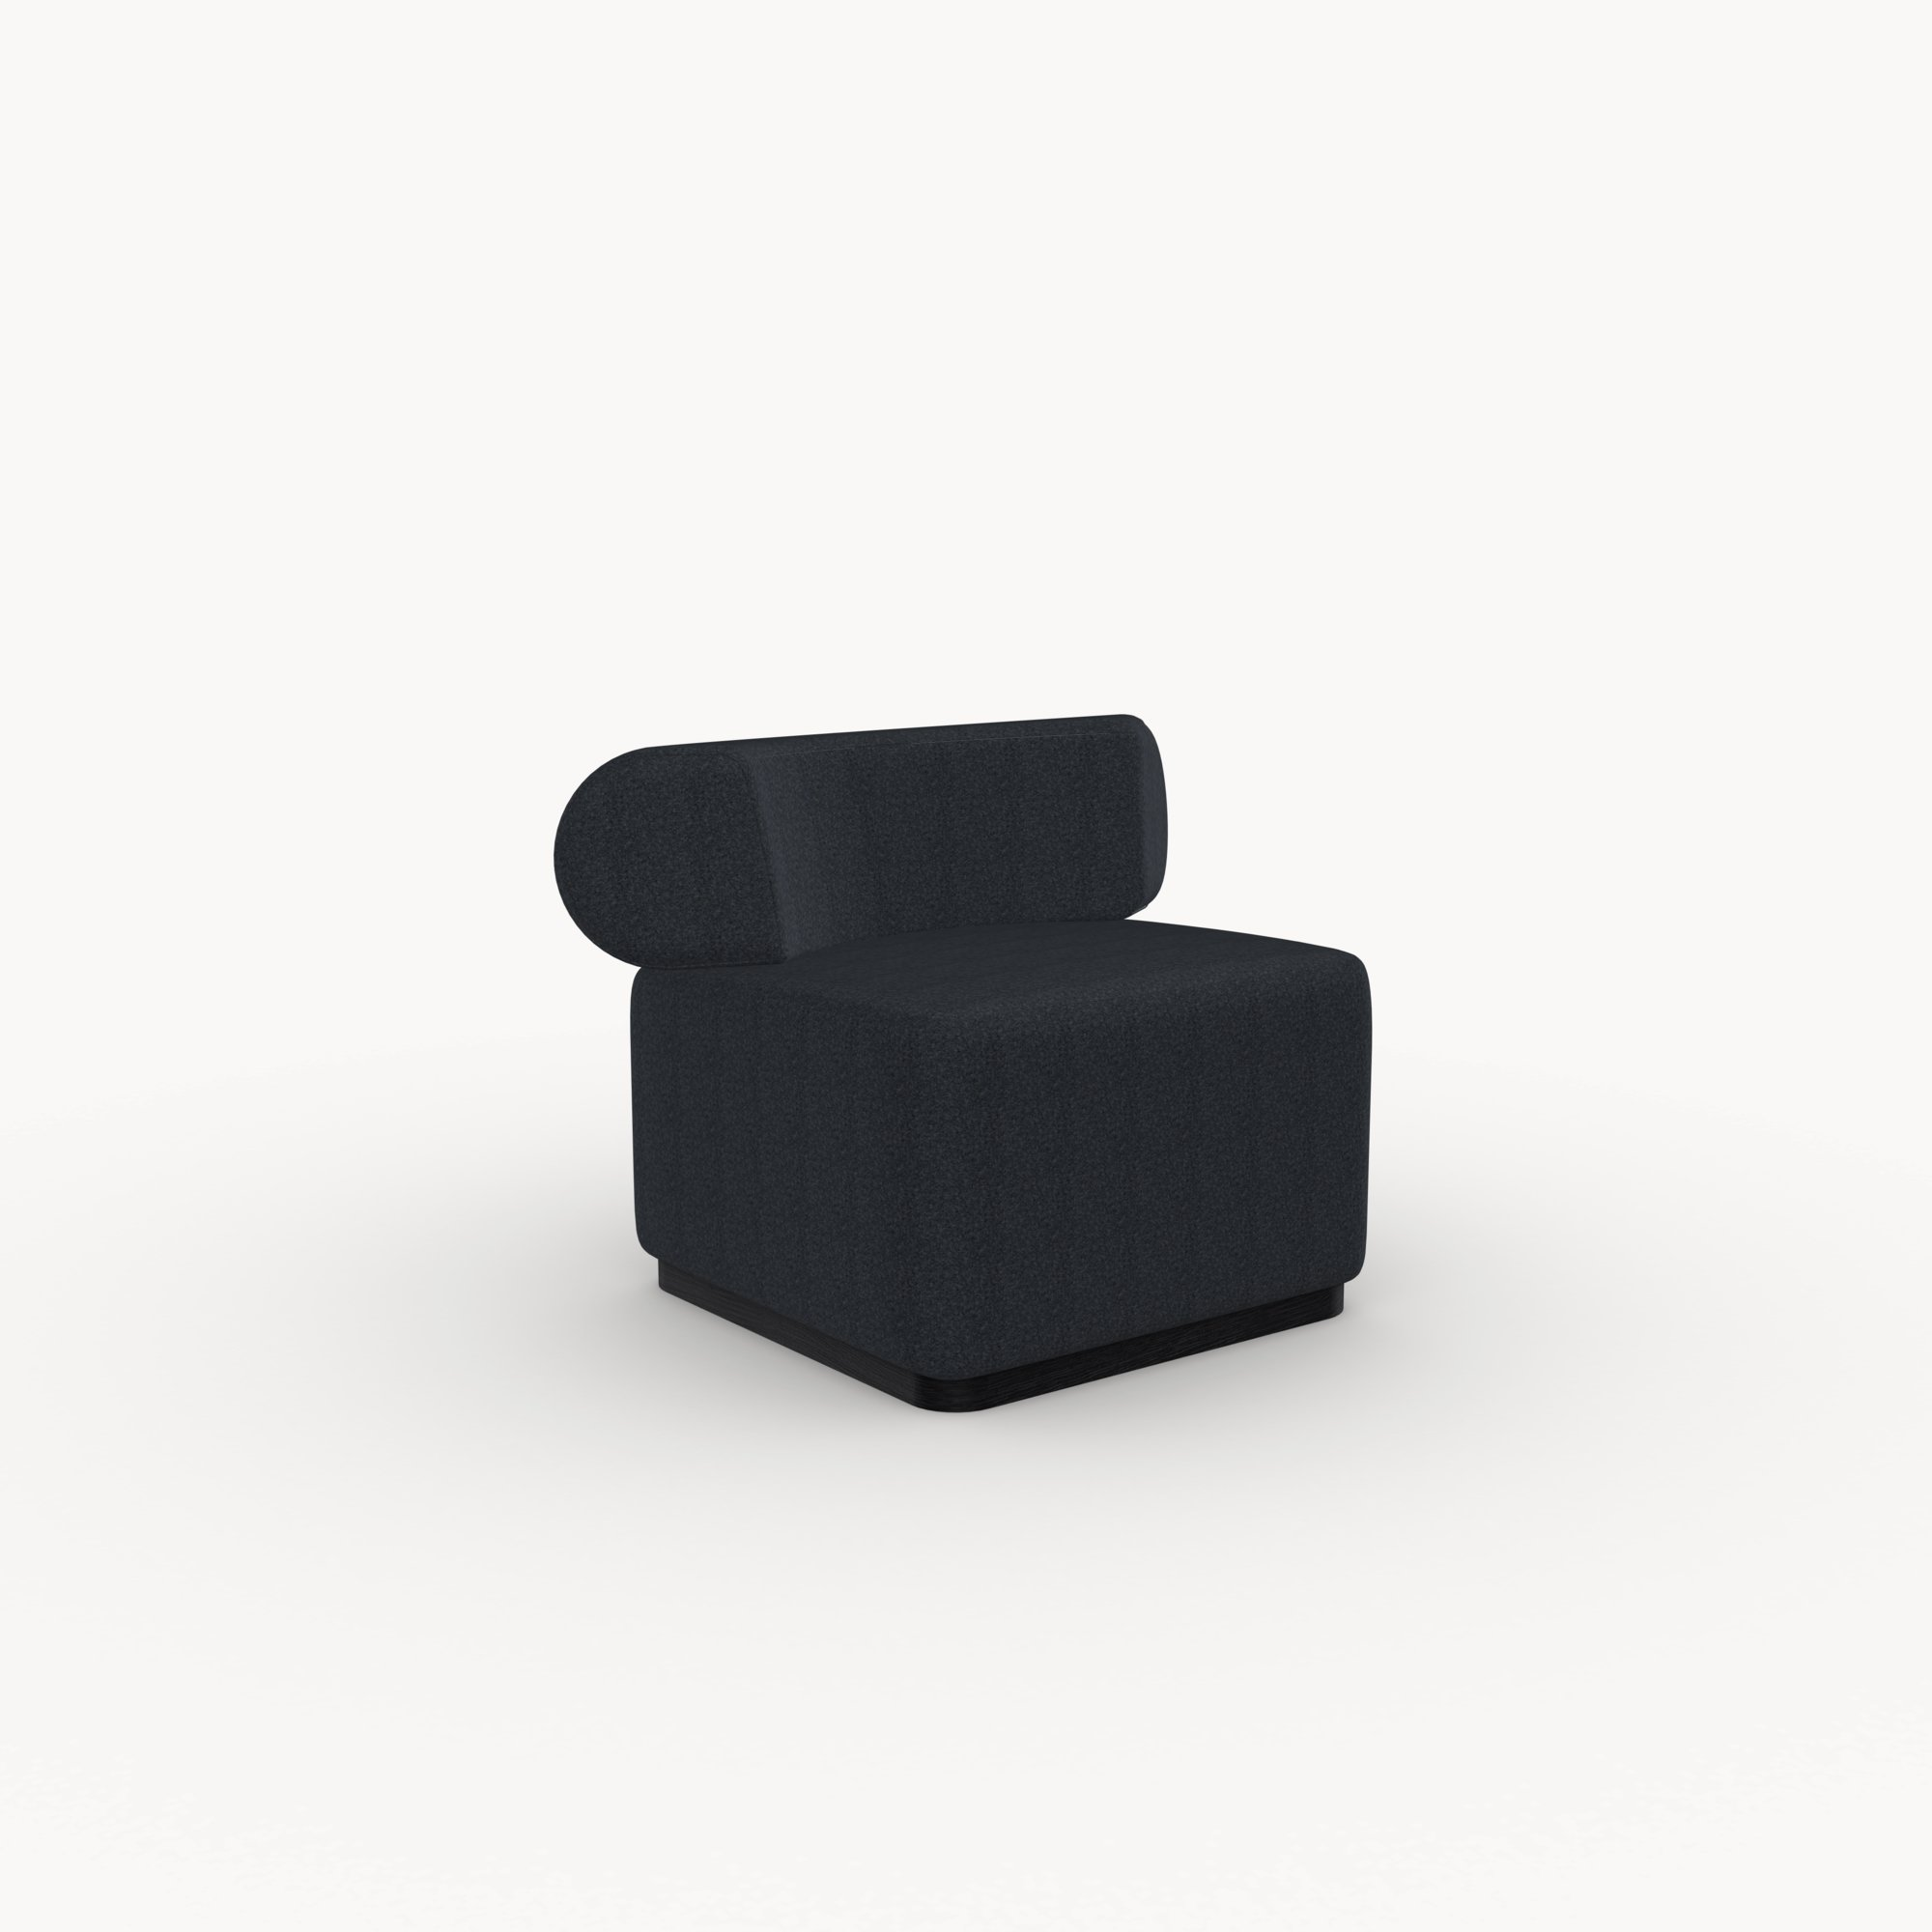 Design zitbank | Luna lounge chair 1 seater facet middengrijs1001 | Studio HENK |